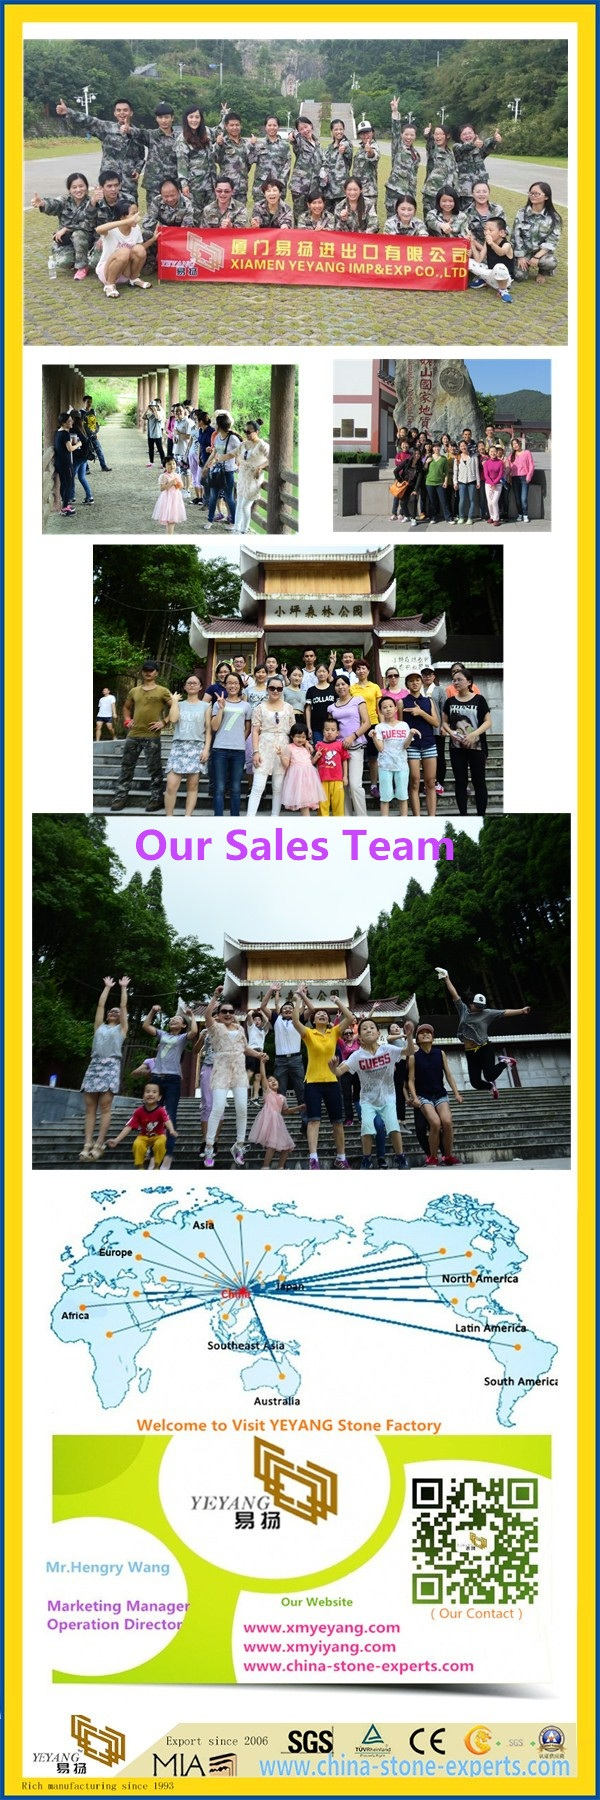 03 Our Sales Team _副本